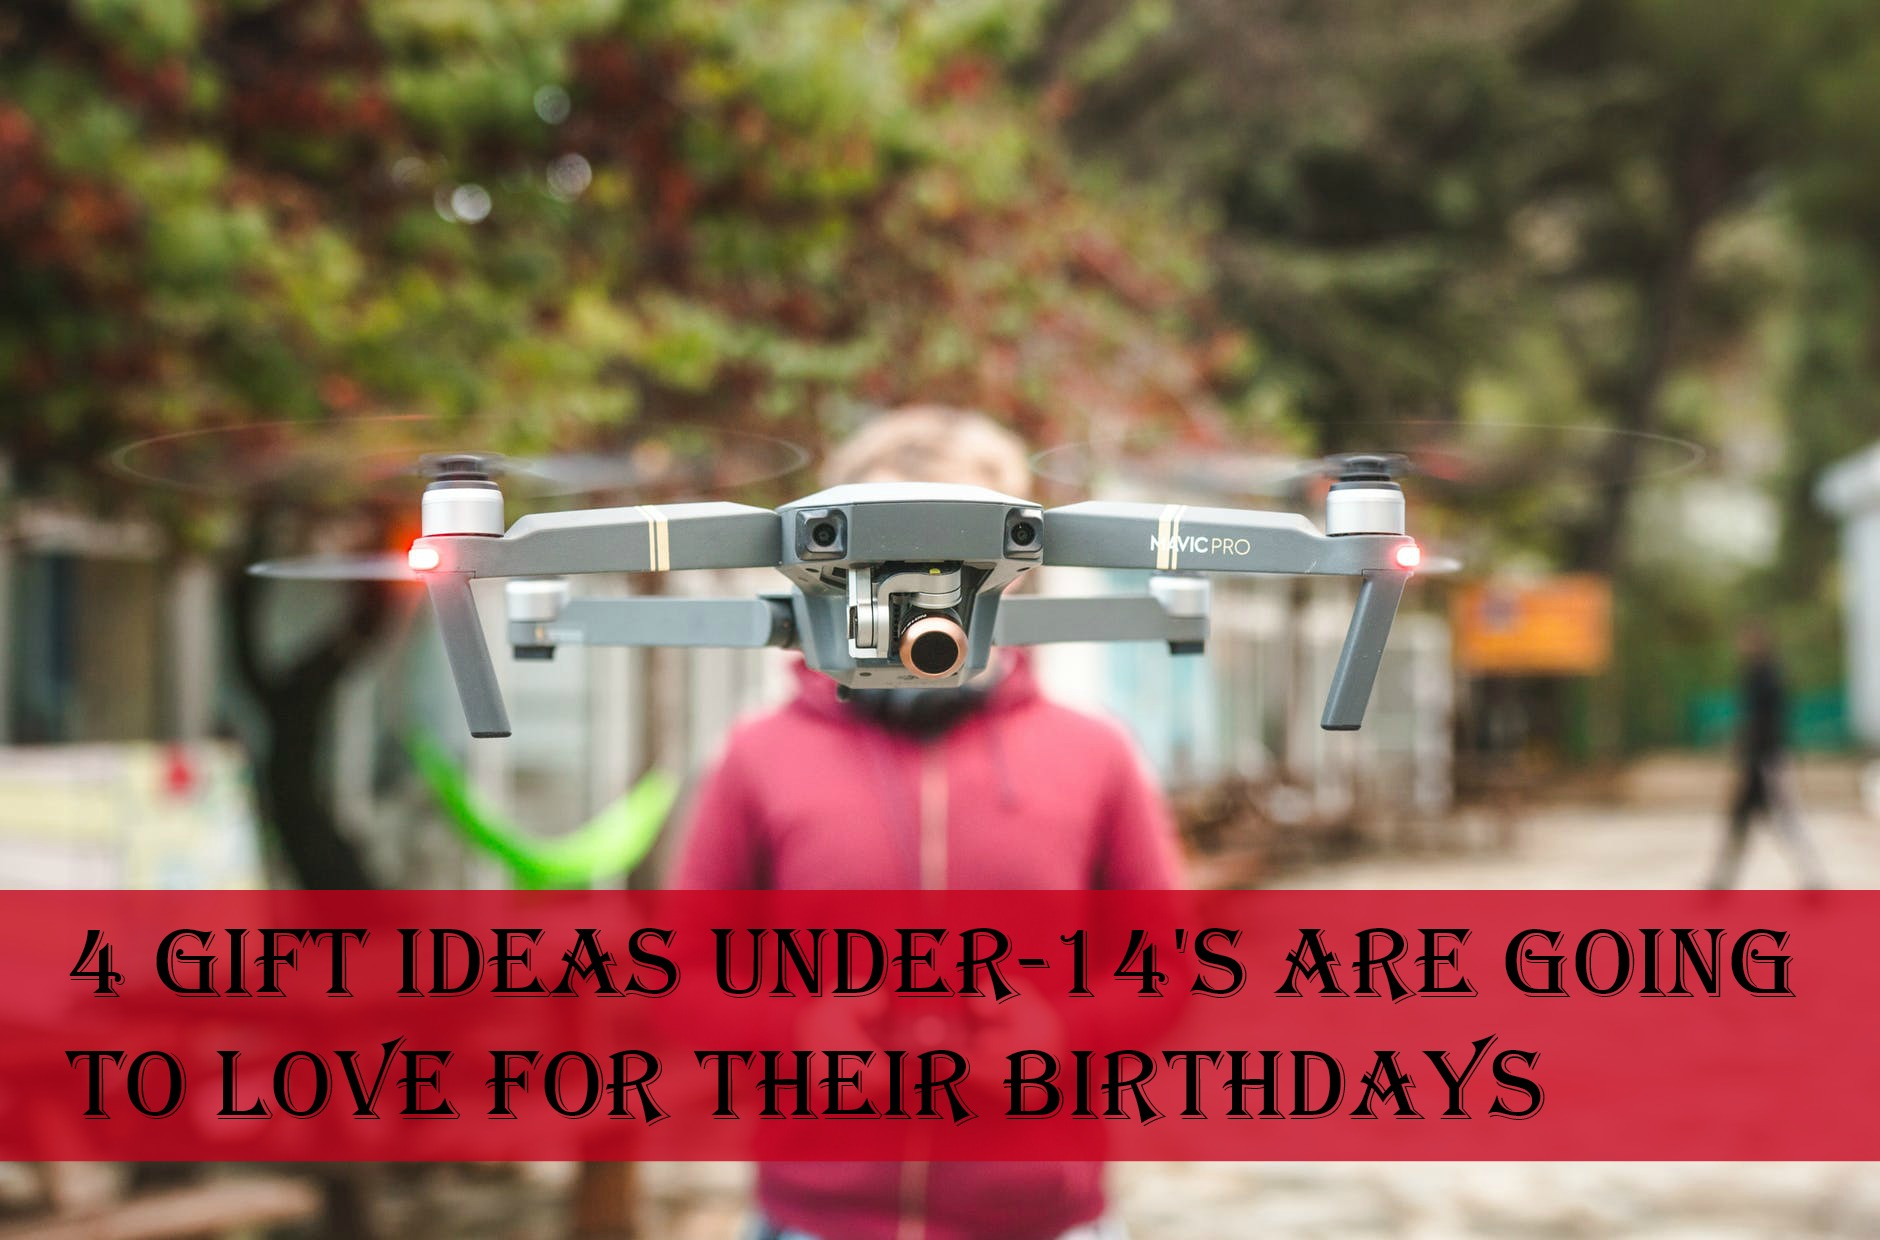 4 Gift Ideas Under-14's Are Going to Love for Their Birthdays